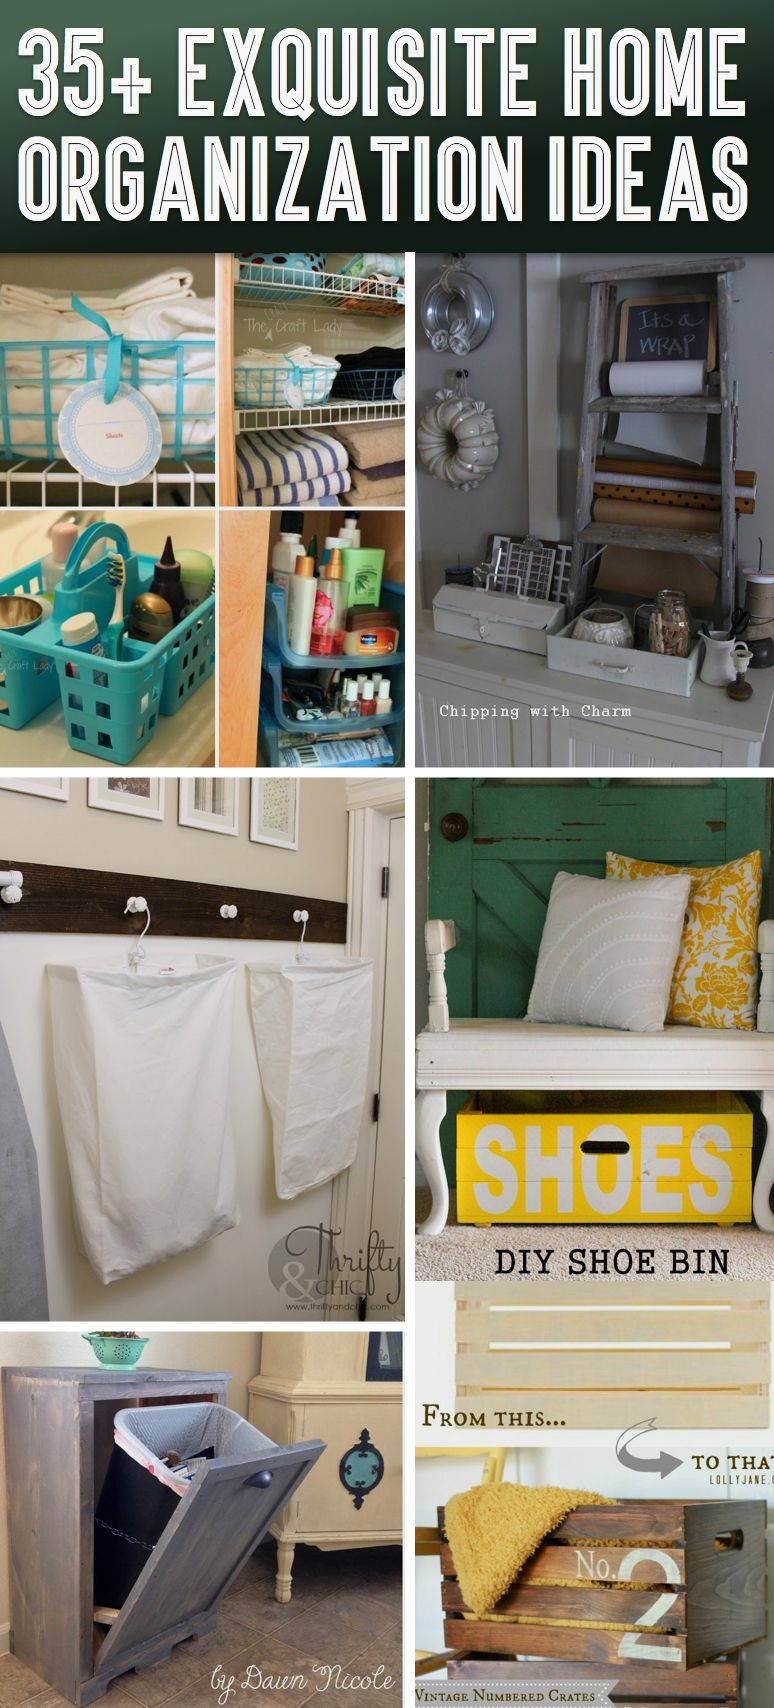 35+ Exquisite Home Organization Ideas To Get Rid of All That Clutter on ideas to organize home, ideas to organize magazines, ideas to organize watches, ideas to organize pantry, ideas to organize books, ideas to organize living room, ideas to organize garage, ideas to organize jewelry, ideas to organize bedroom, ideas to organize toys, ideas to organize toilet,